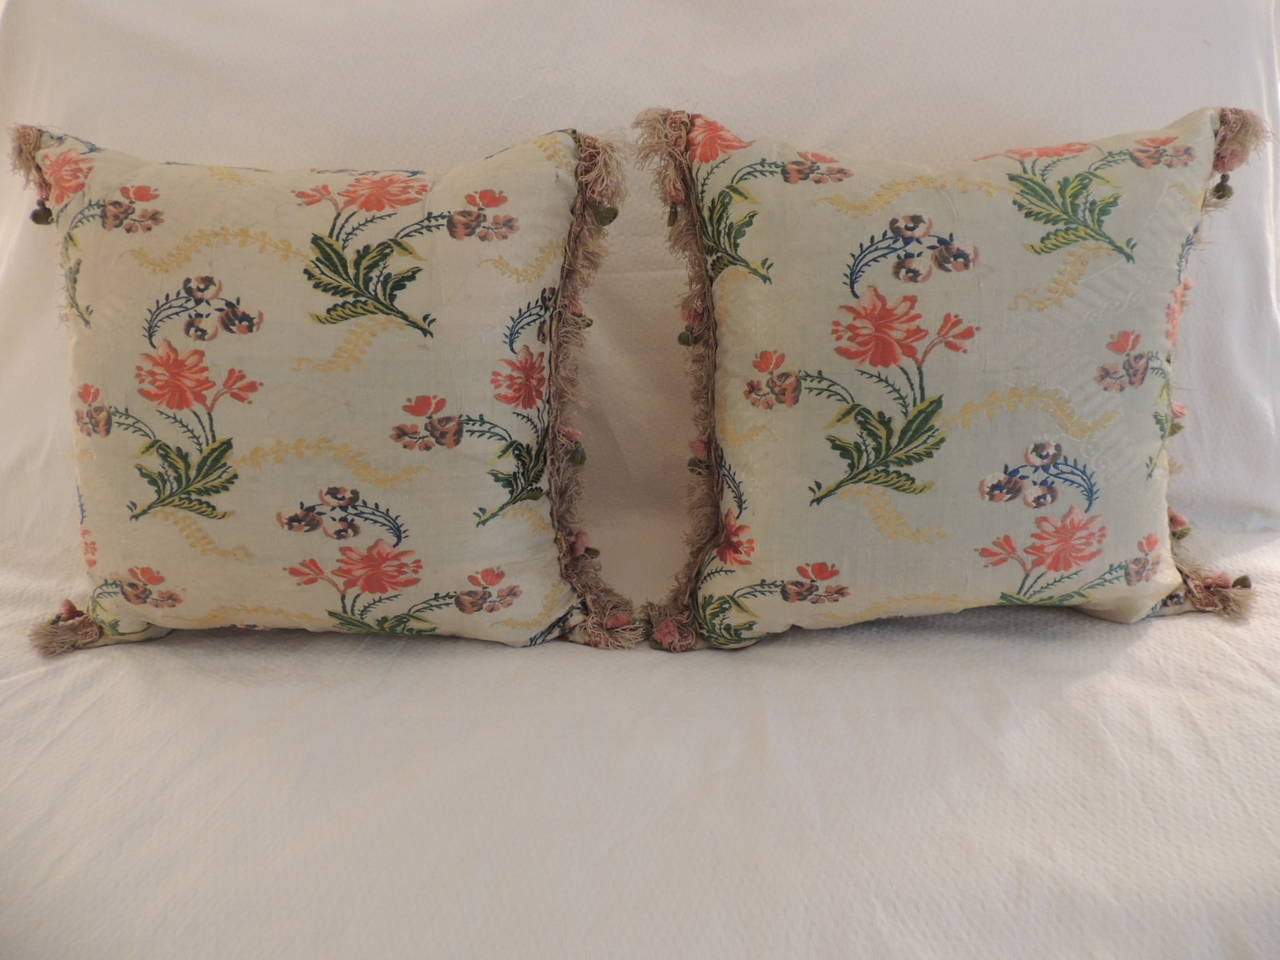 Decorative Pillows With Tassels : Pair of Antique Silk Brocade Floral Decorative Pillows with Tassel Trim For Sale at 1stdibs